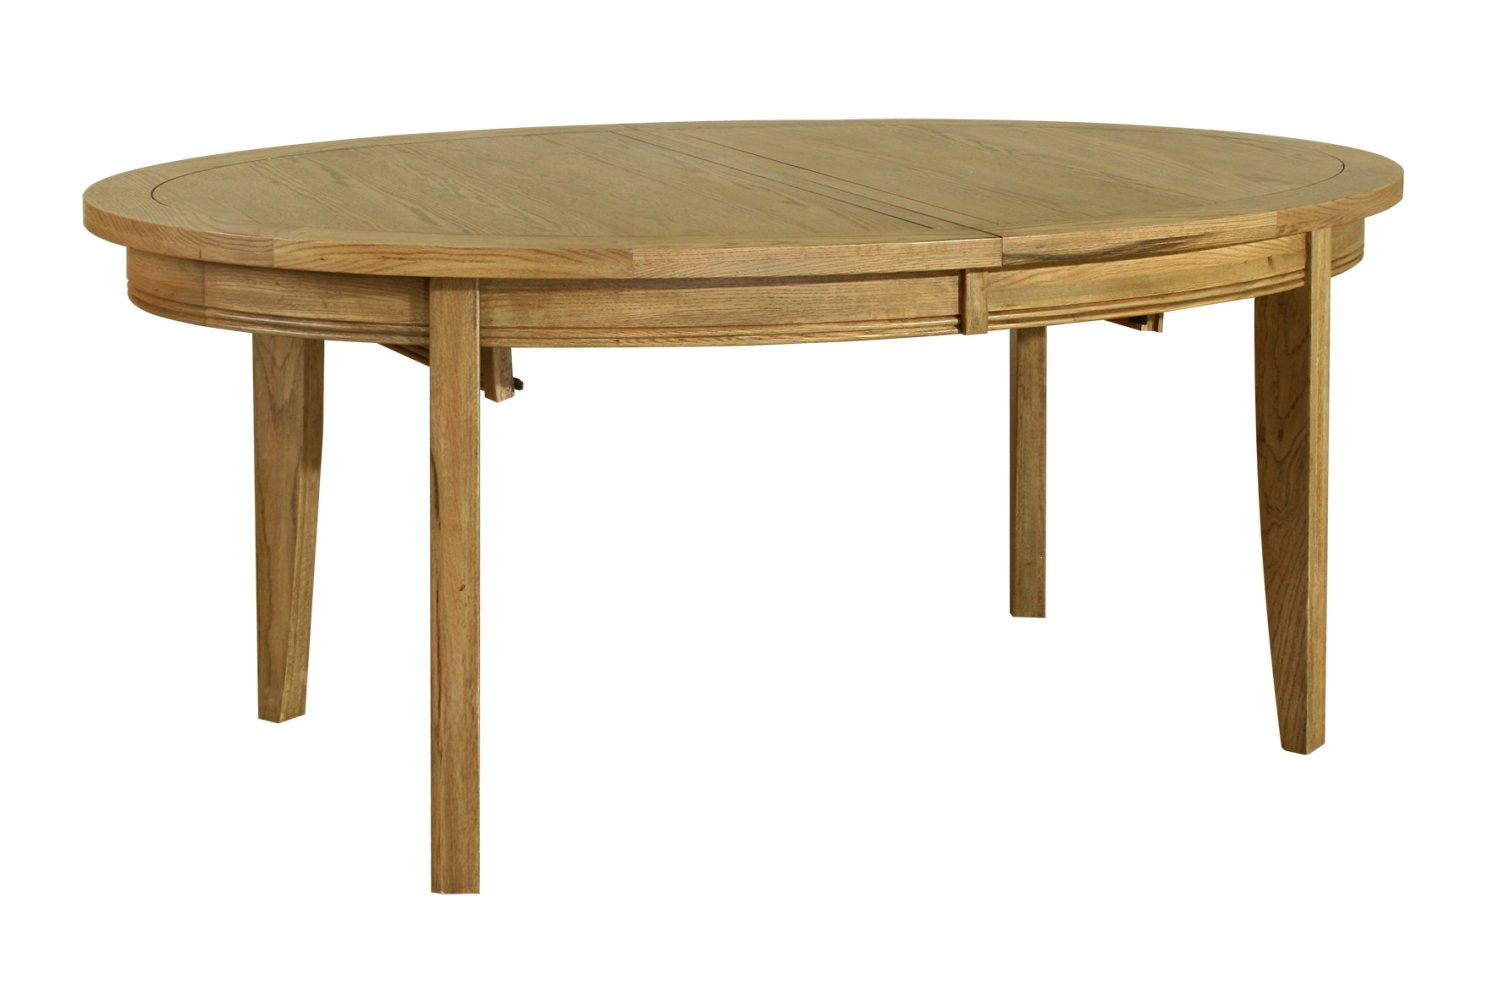 Linden Solid Oak Dining Room Furniture Oval Extending